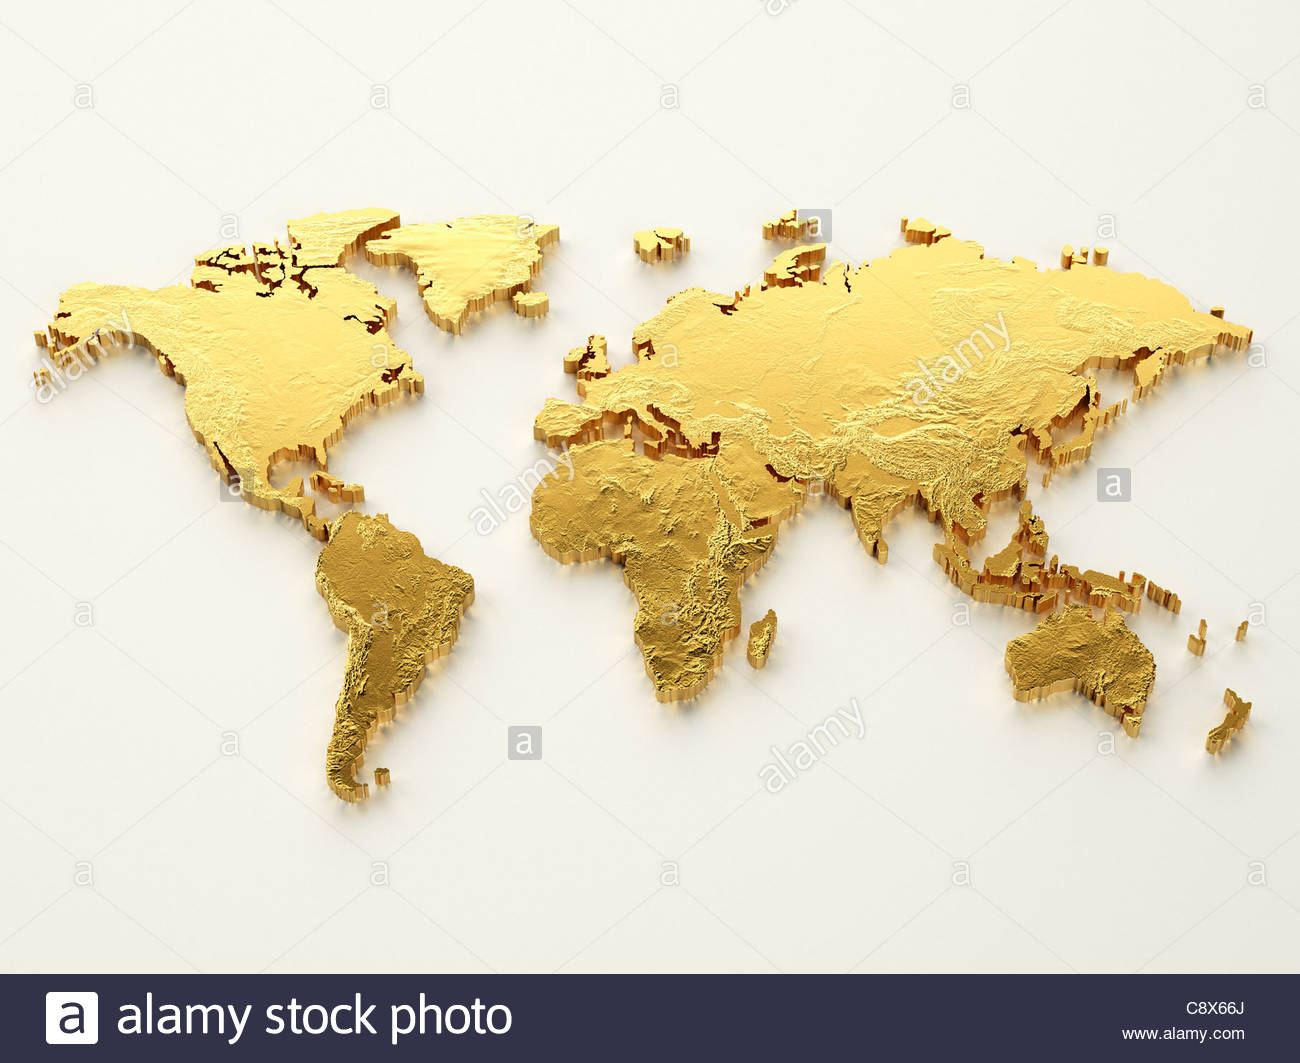 Gold world map on white background stock photo 39913626 alamy gold world map on white background gumiabroncs Gallery